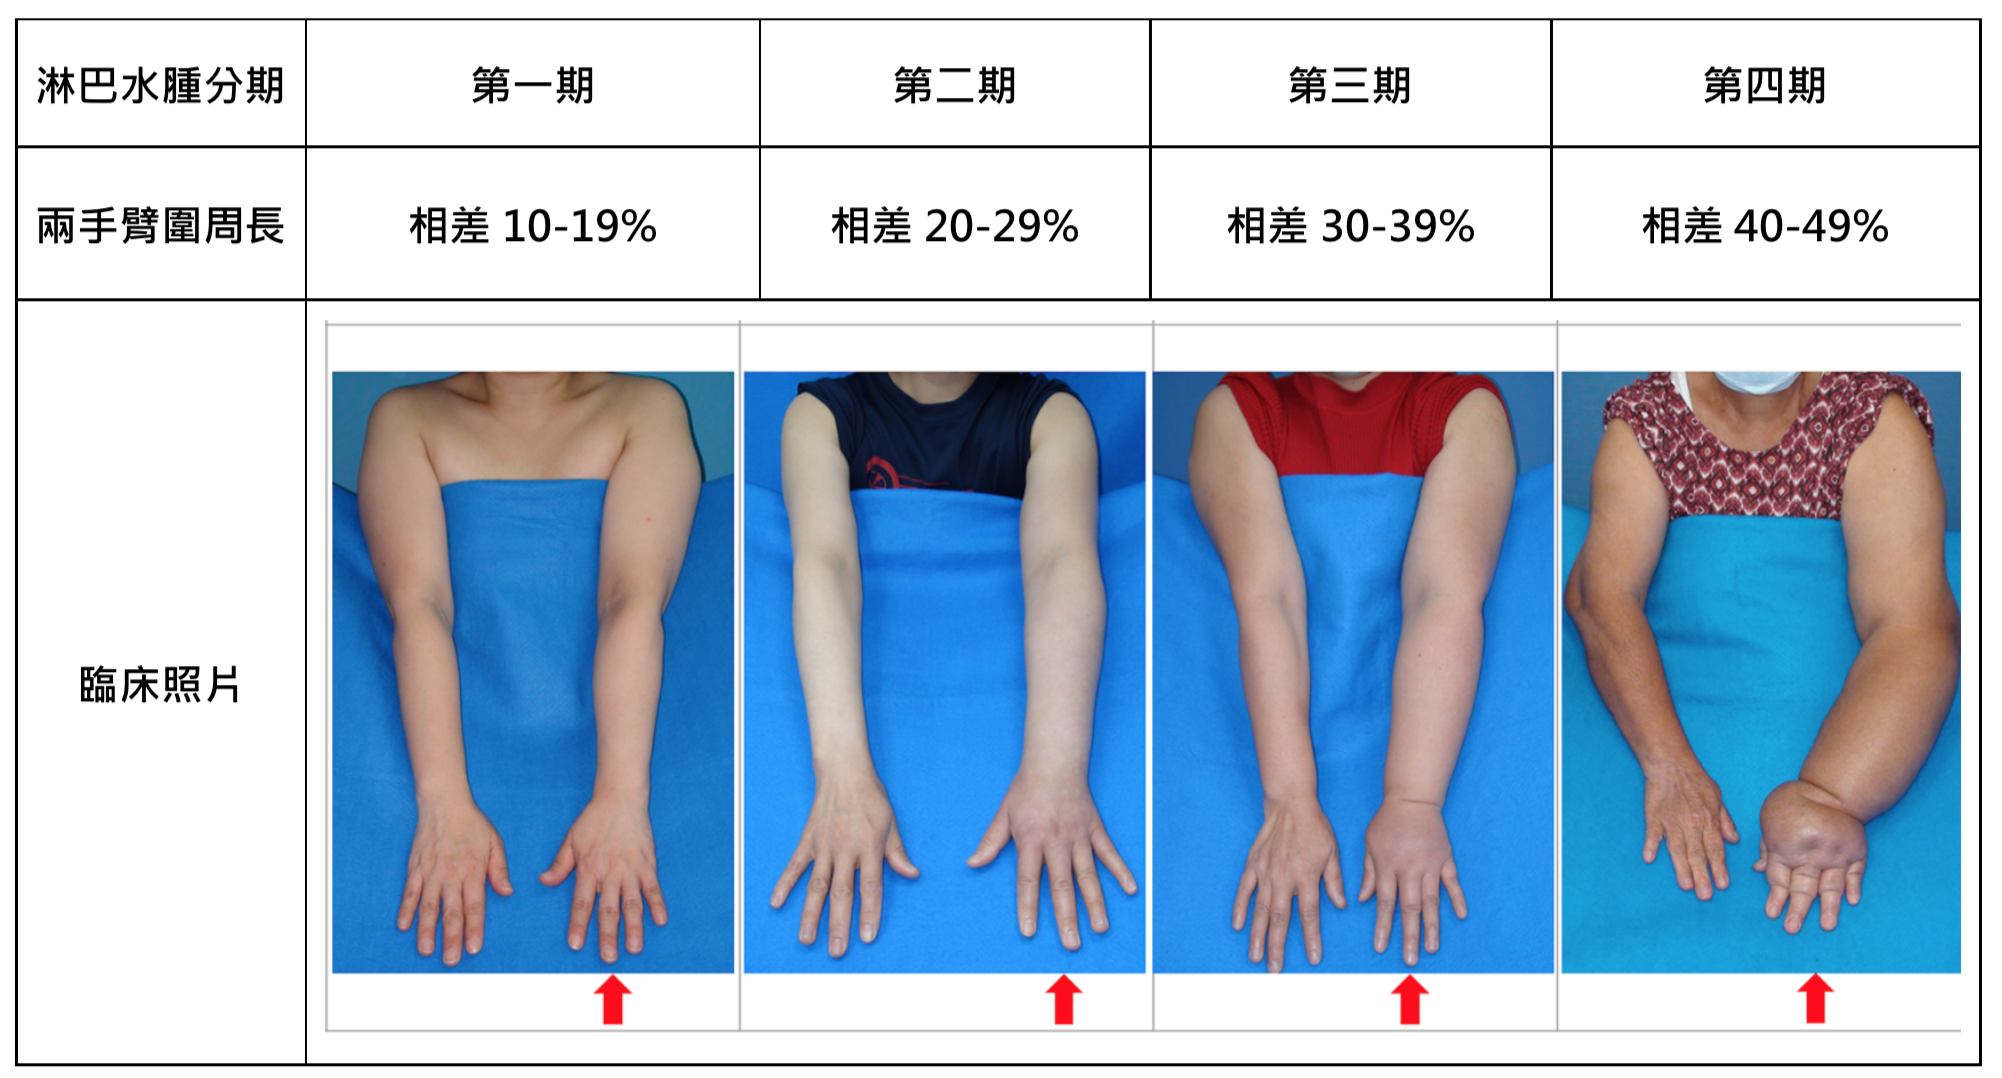 Lymphedema Grading Systems - Before Treatment photos - patients hands